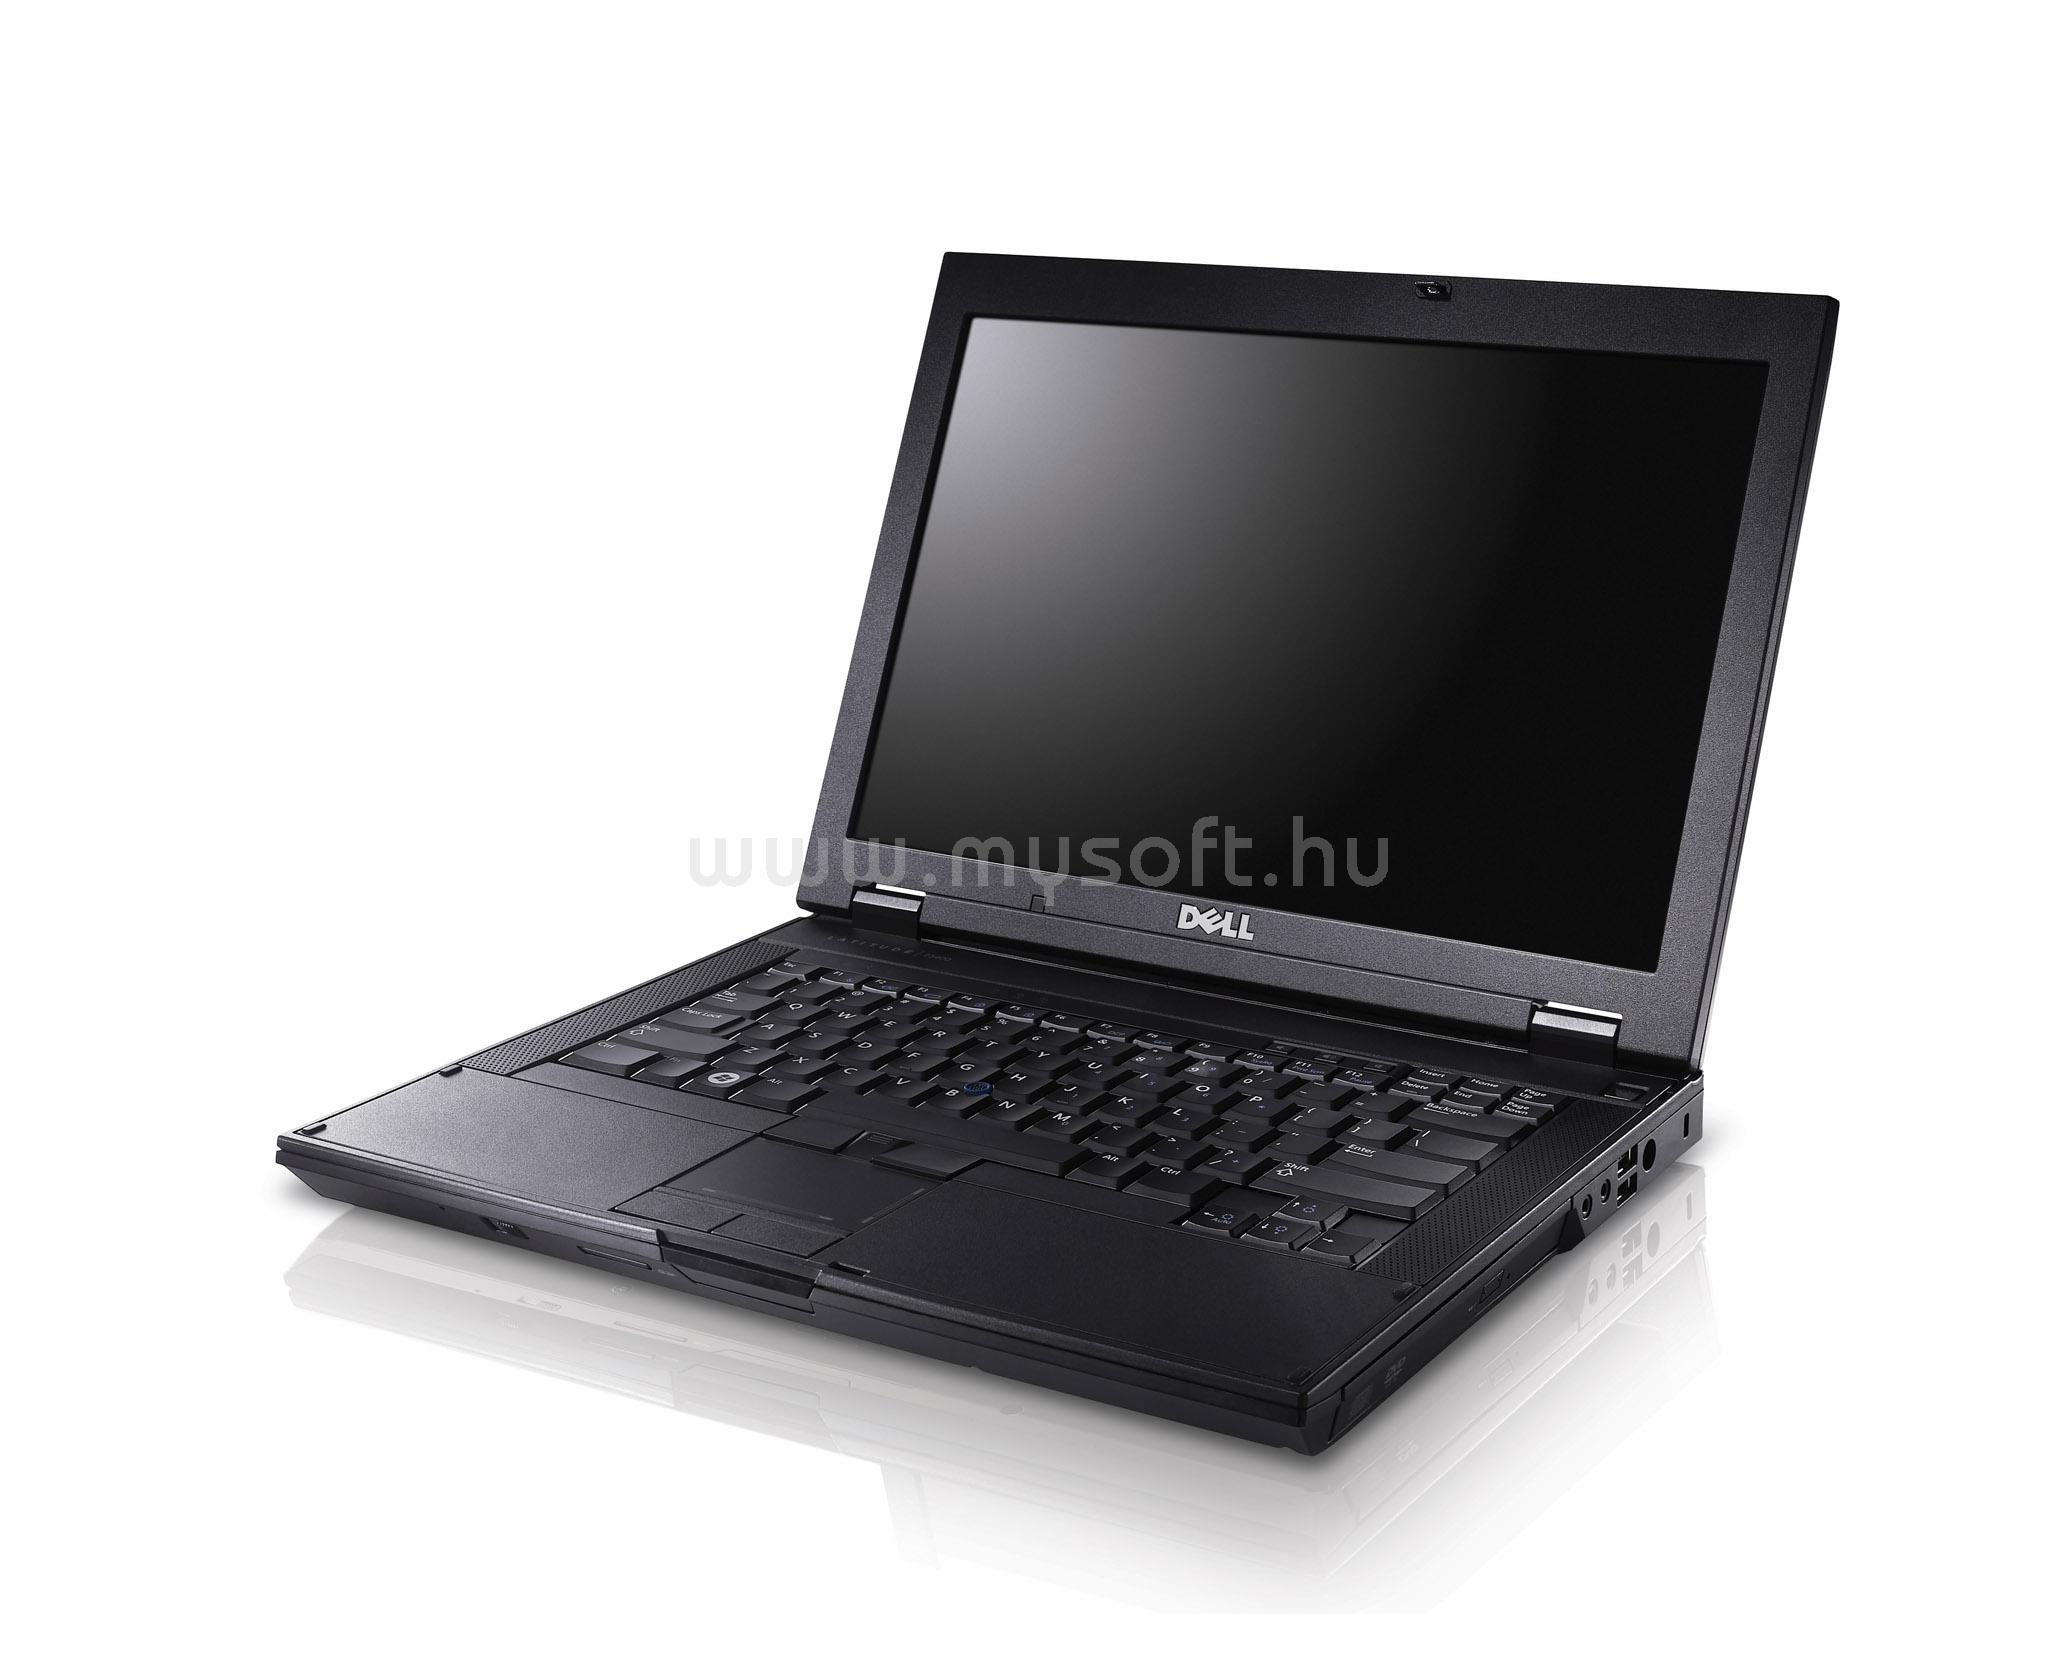 lenovo thinkpad edge driver